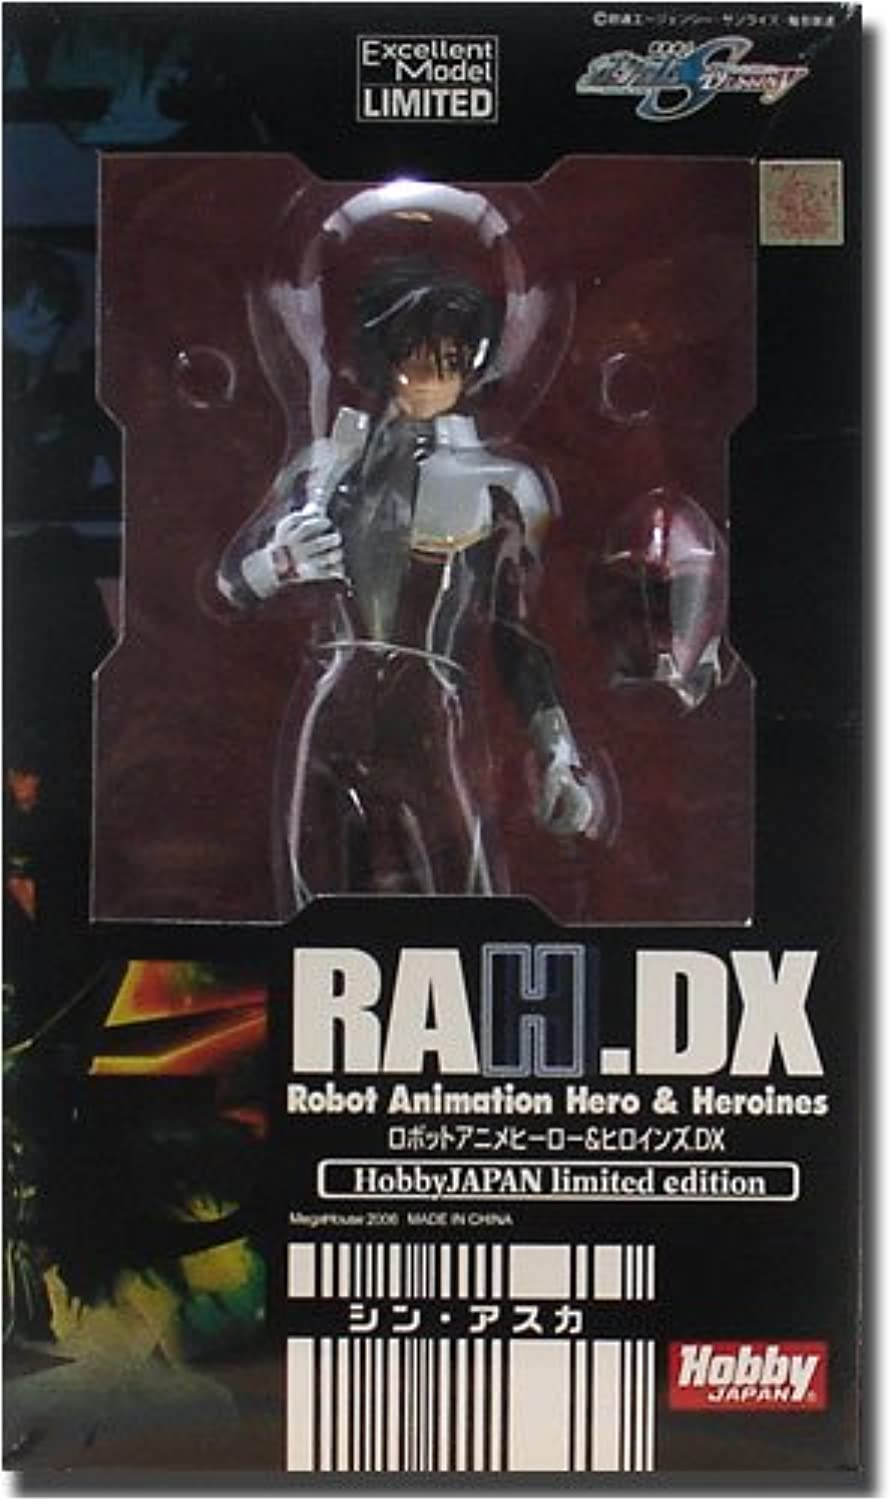 Gundam Seed Destiny RAH DX AsukaPVC Statue 1 8 Scale Hobby Japan Limited Edition (japan import)